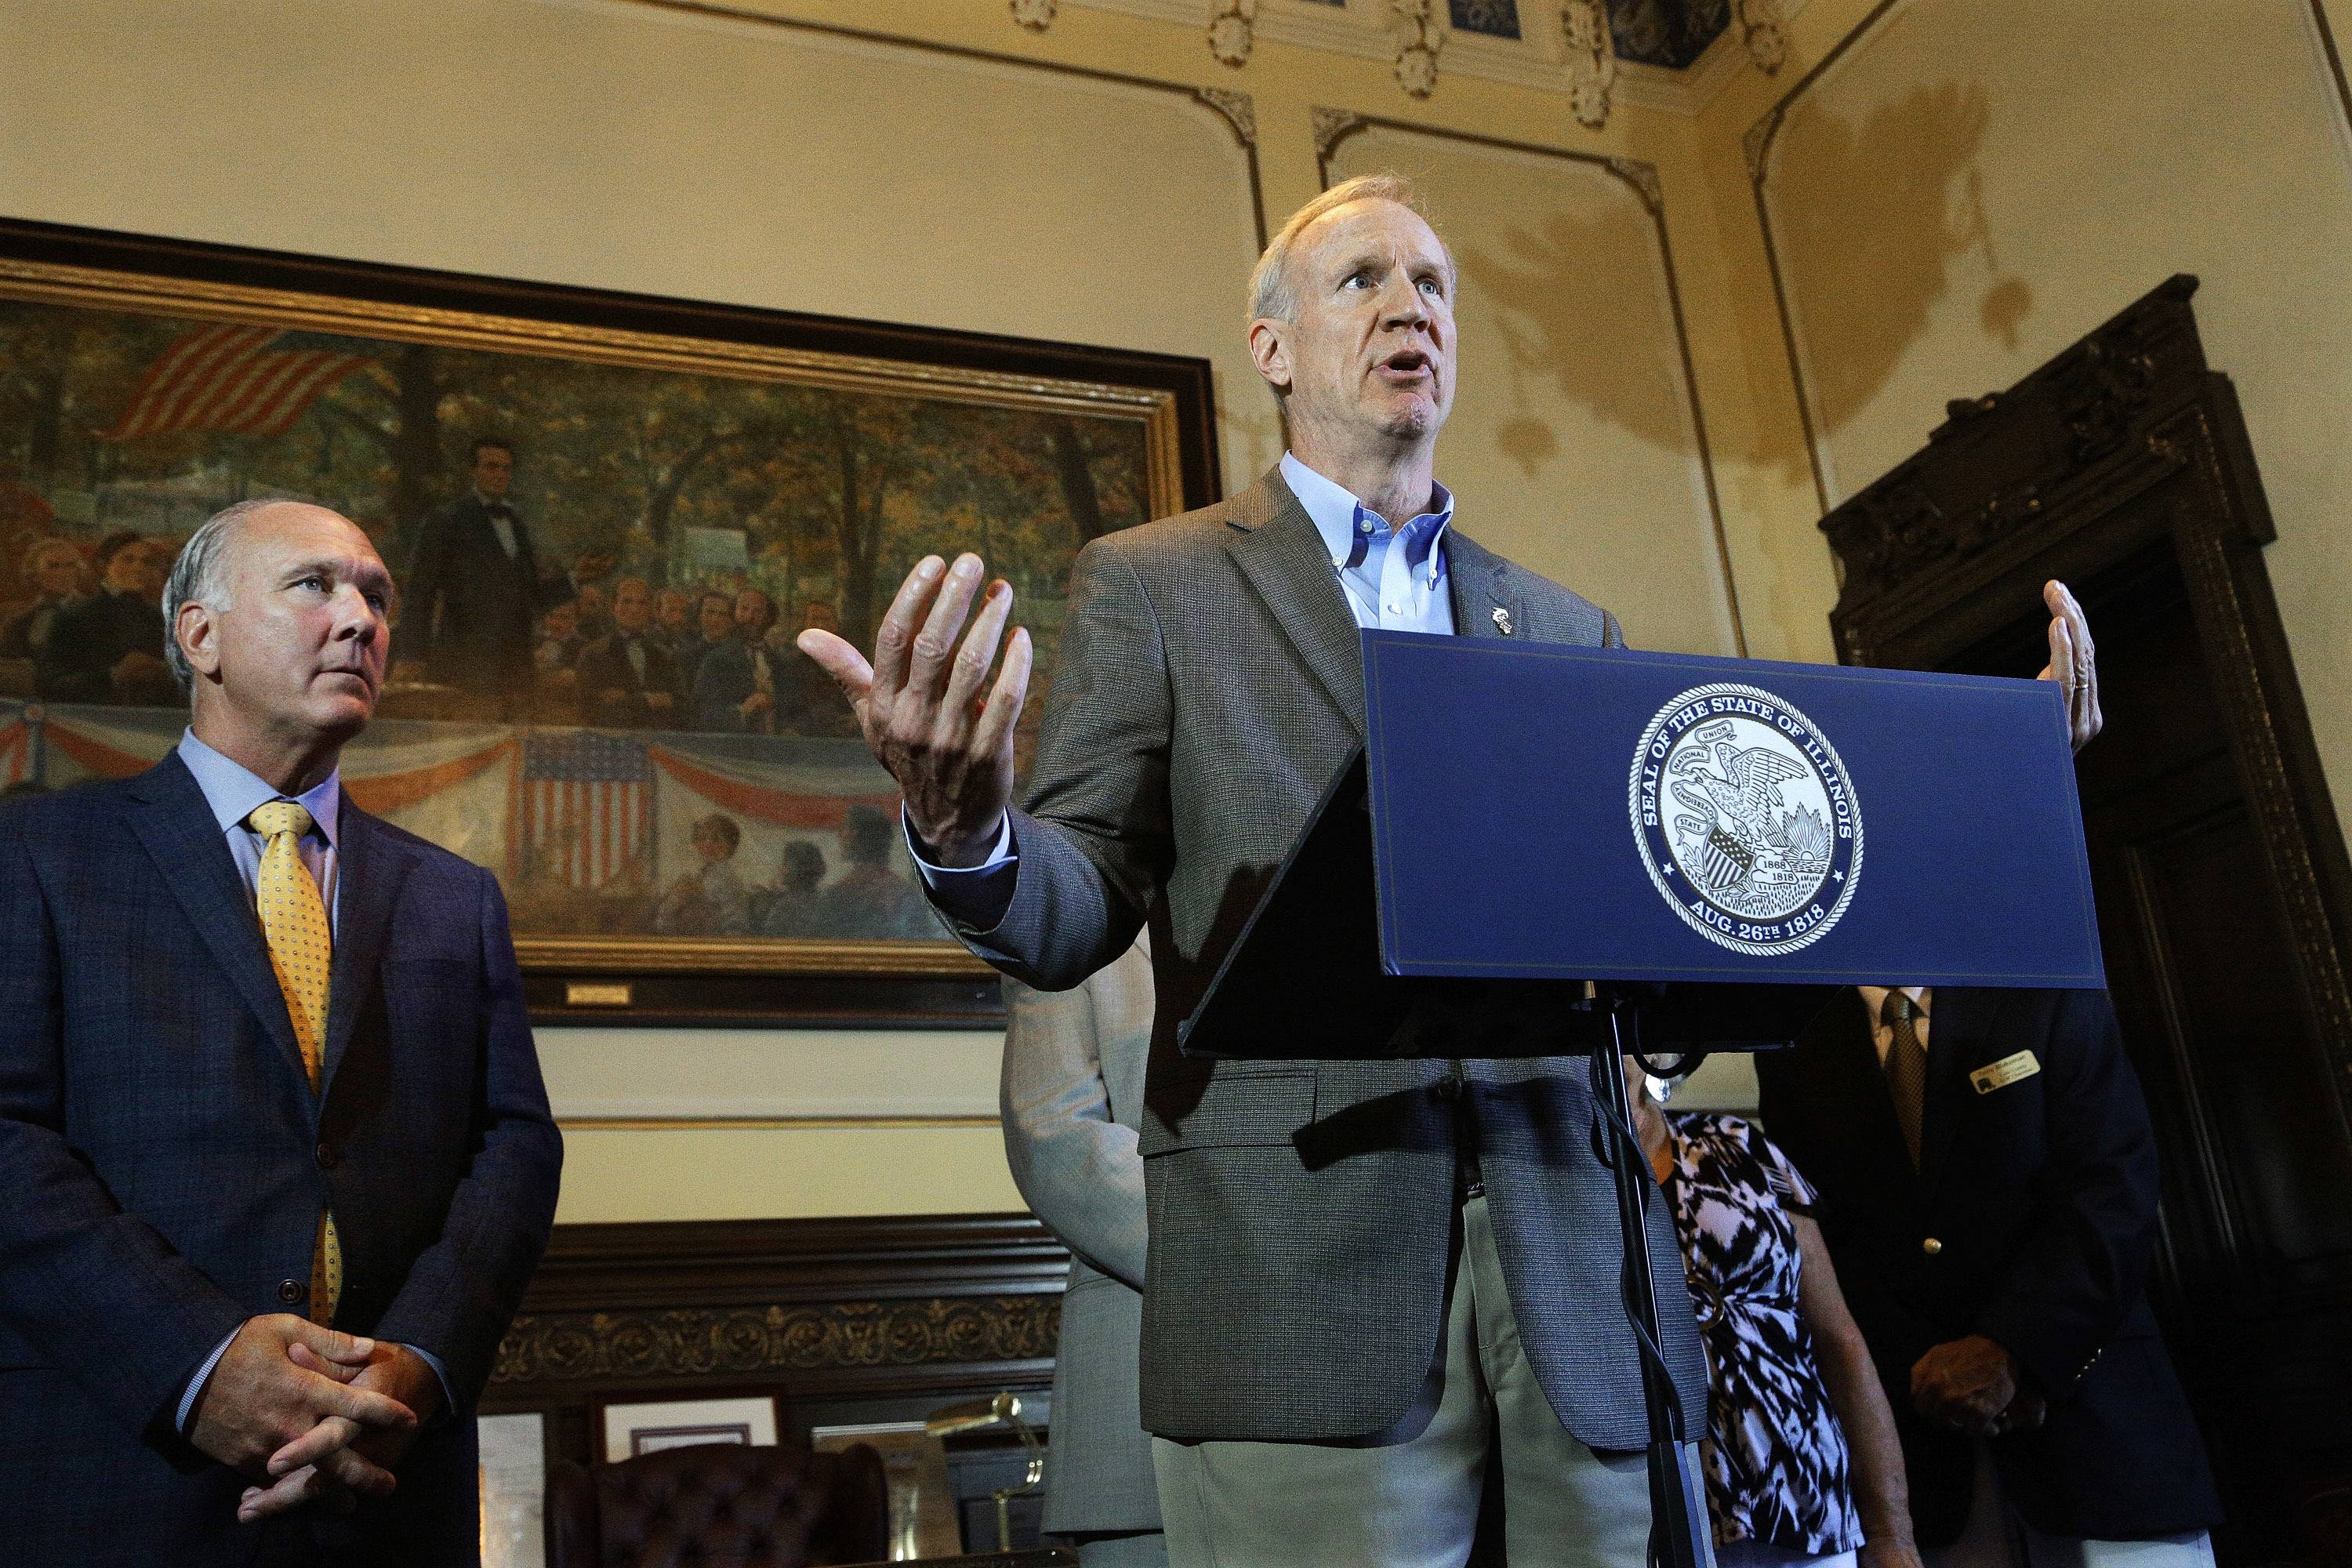 Illinois Gov. Bruce Rauner speaks to reporters Monday about the state budget and education funding in his office at the Illinois State Capitol in Springfield. Looking on is City of Naperville Mayor Steve Chirico.